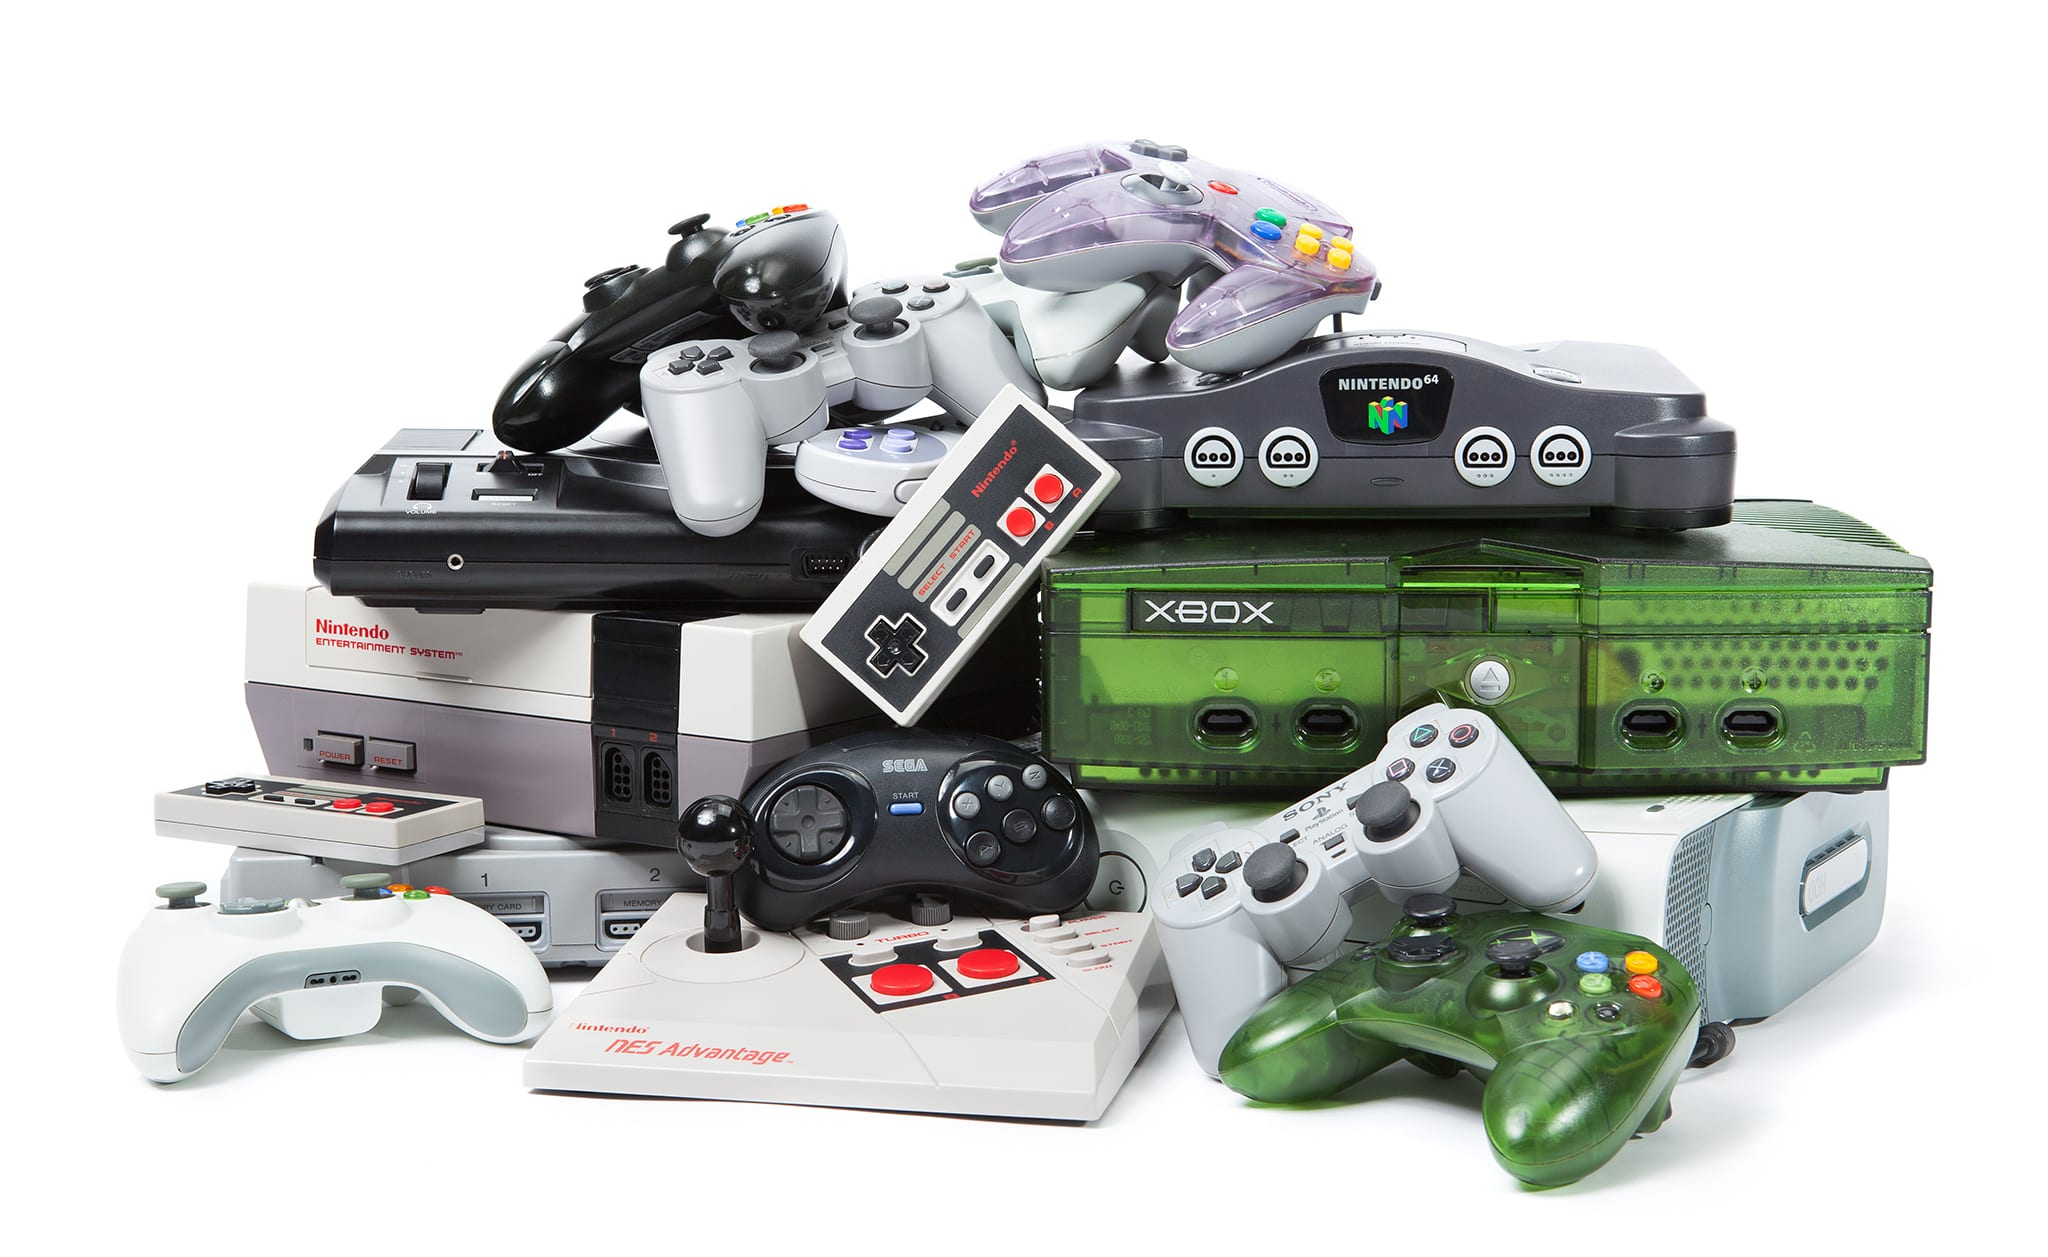 Taipei, Taiwan - November 13, 2012: This is a studio shot of various game systems and controllers isolated on a white background.